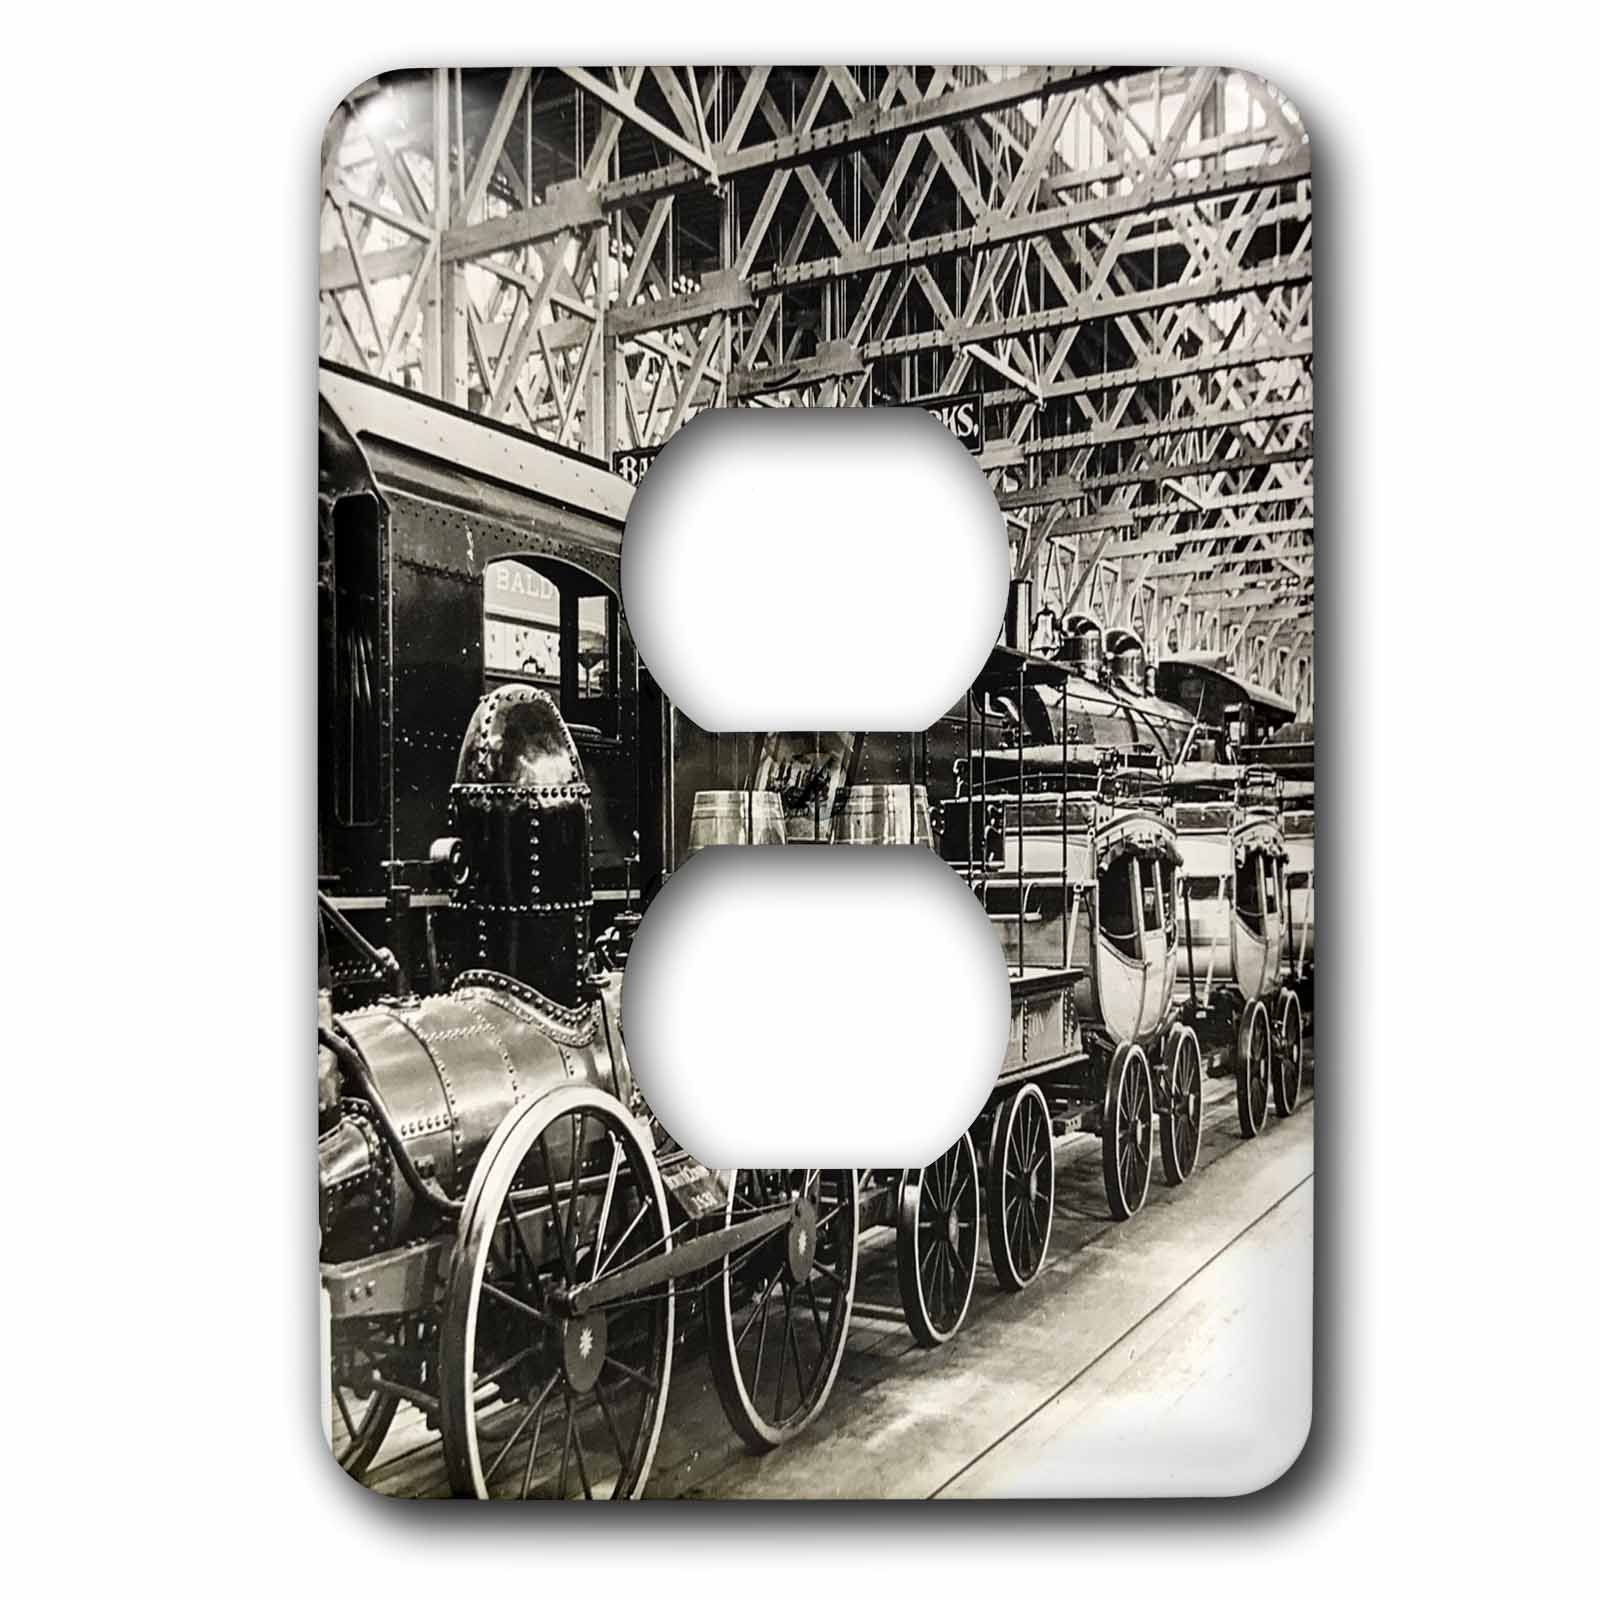 3dRose Scenes from the Past Vintage Stereoview Cards - Baldwin Locomotive Works Pennsylvania Stereoview Late 1800s - Light Switch Covers - 2 plug outlet cover (lsp_270024_6)